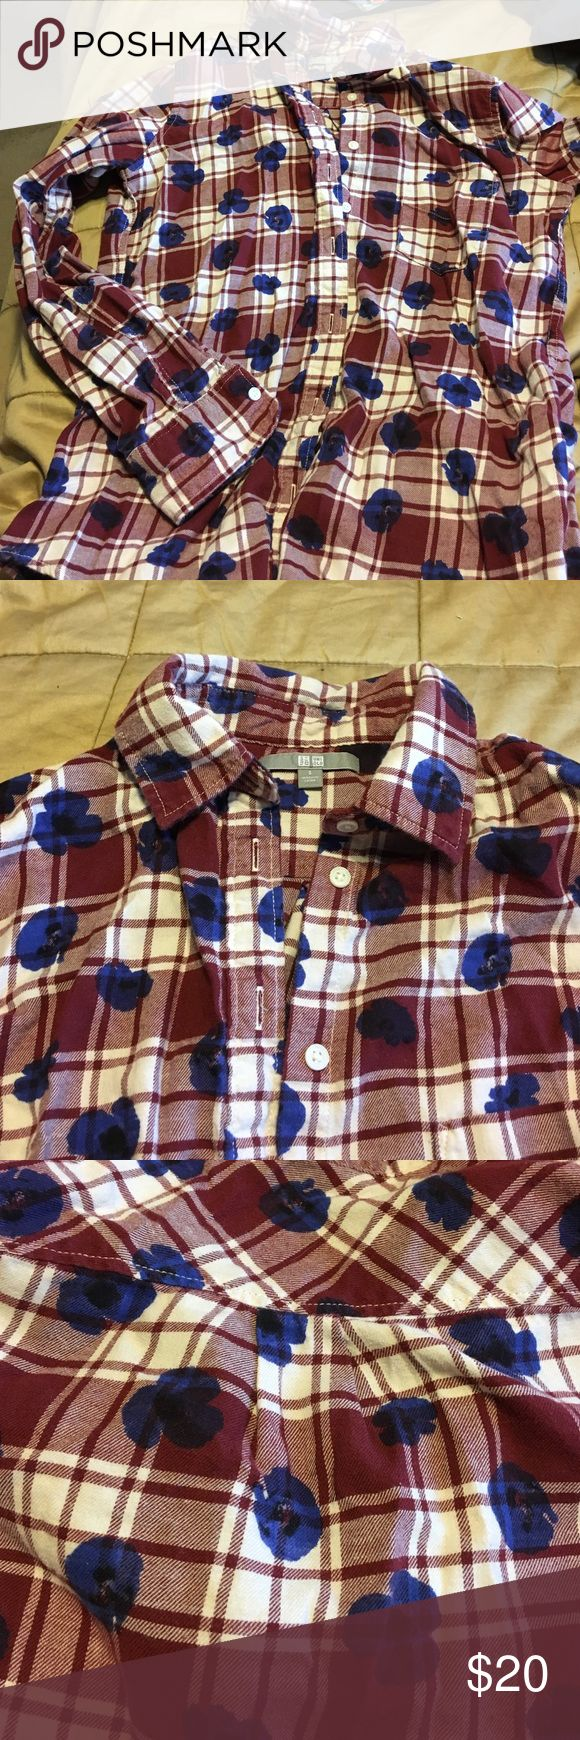 Uniqlo Plaid Shirt Plaid Uniqlo shirt! Burgundy and white with adorable blue flowers! Like new! Uniqlo Tops Button Down Shirts